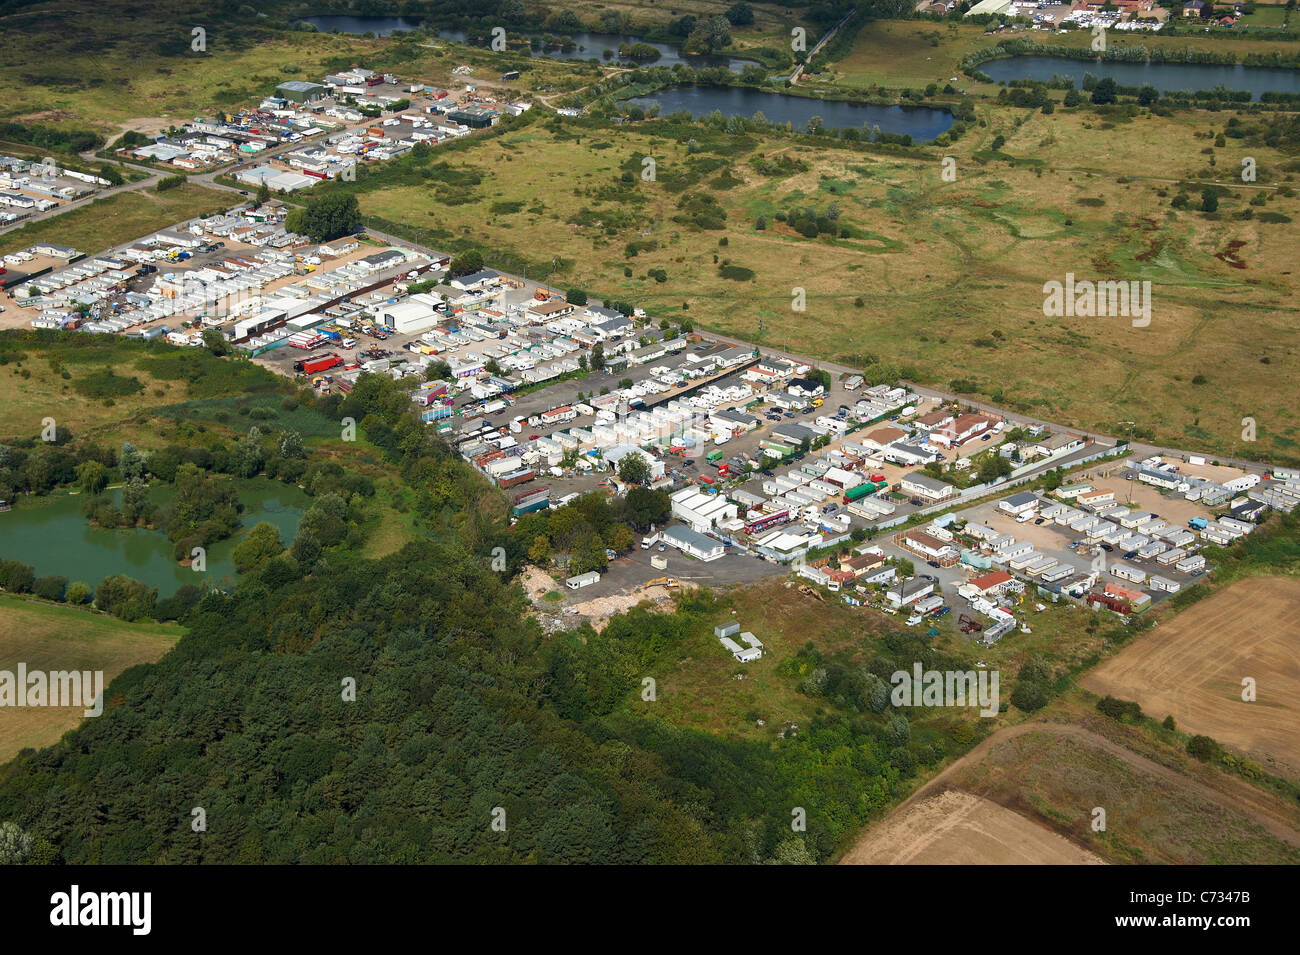 Dale Farm Travellers Site, Essex, South East England - Stock Image